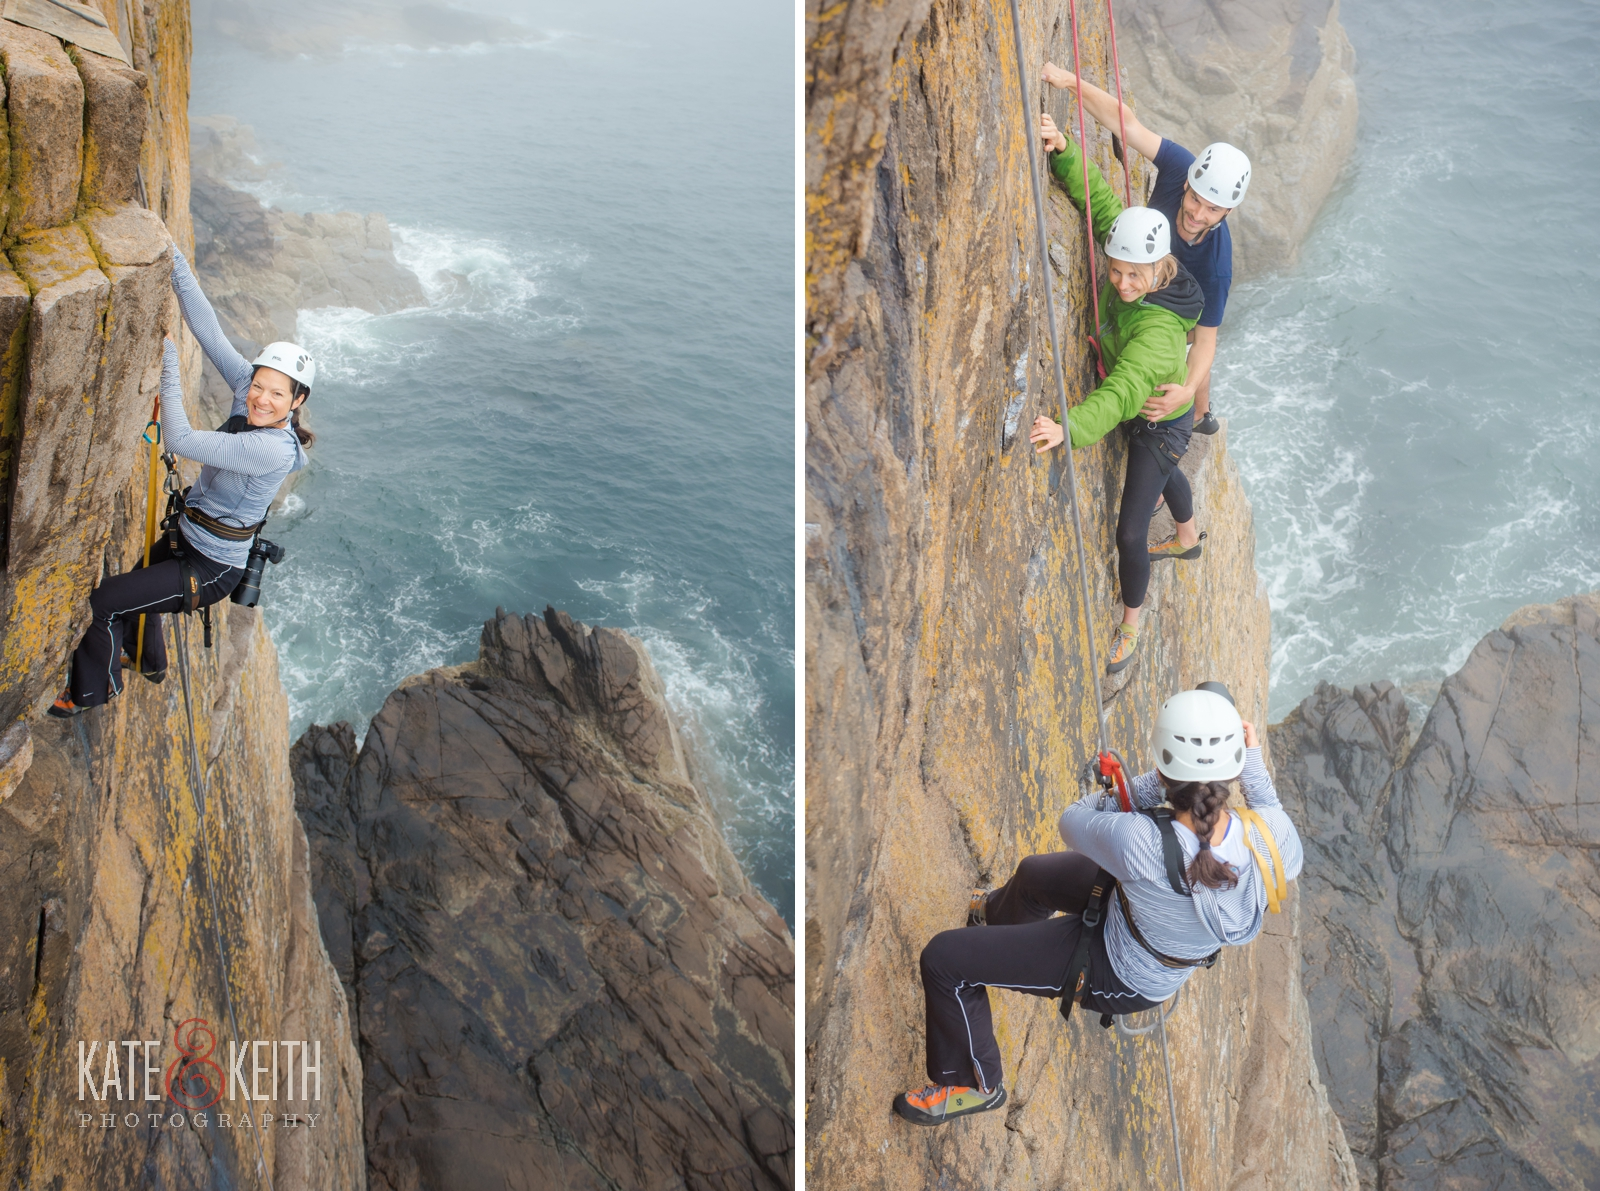 adventure wedding photographers, Otter Cliffs, Acadia National Park, rock climbing, adventurous couple, anniversary portrait session, adventure photography